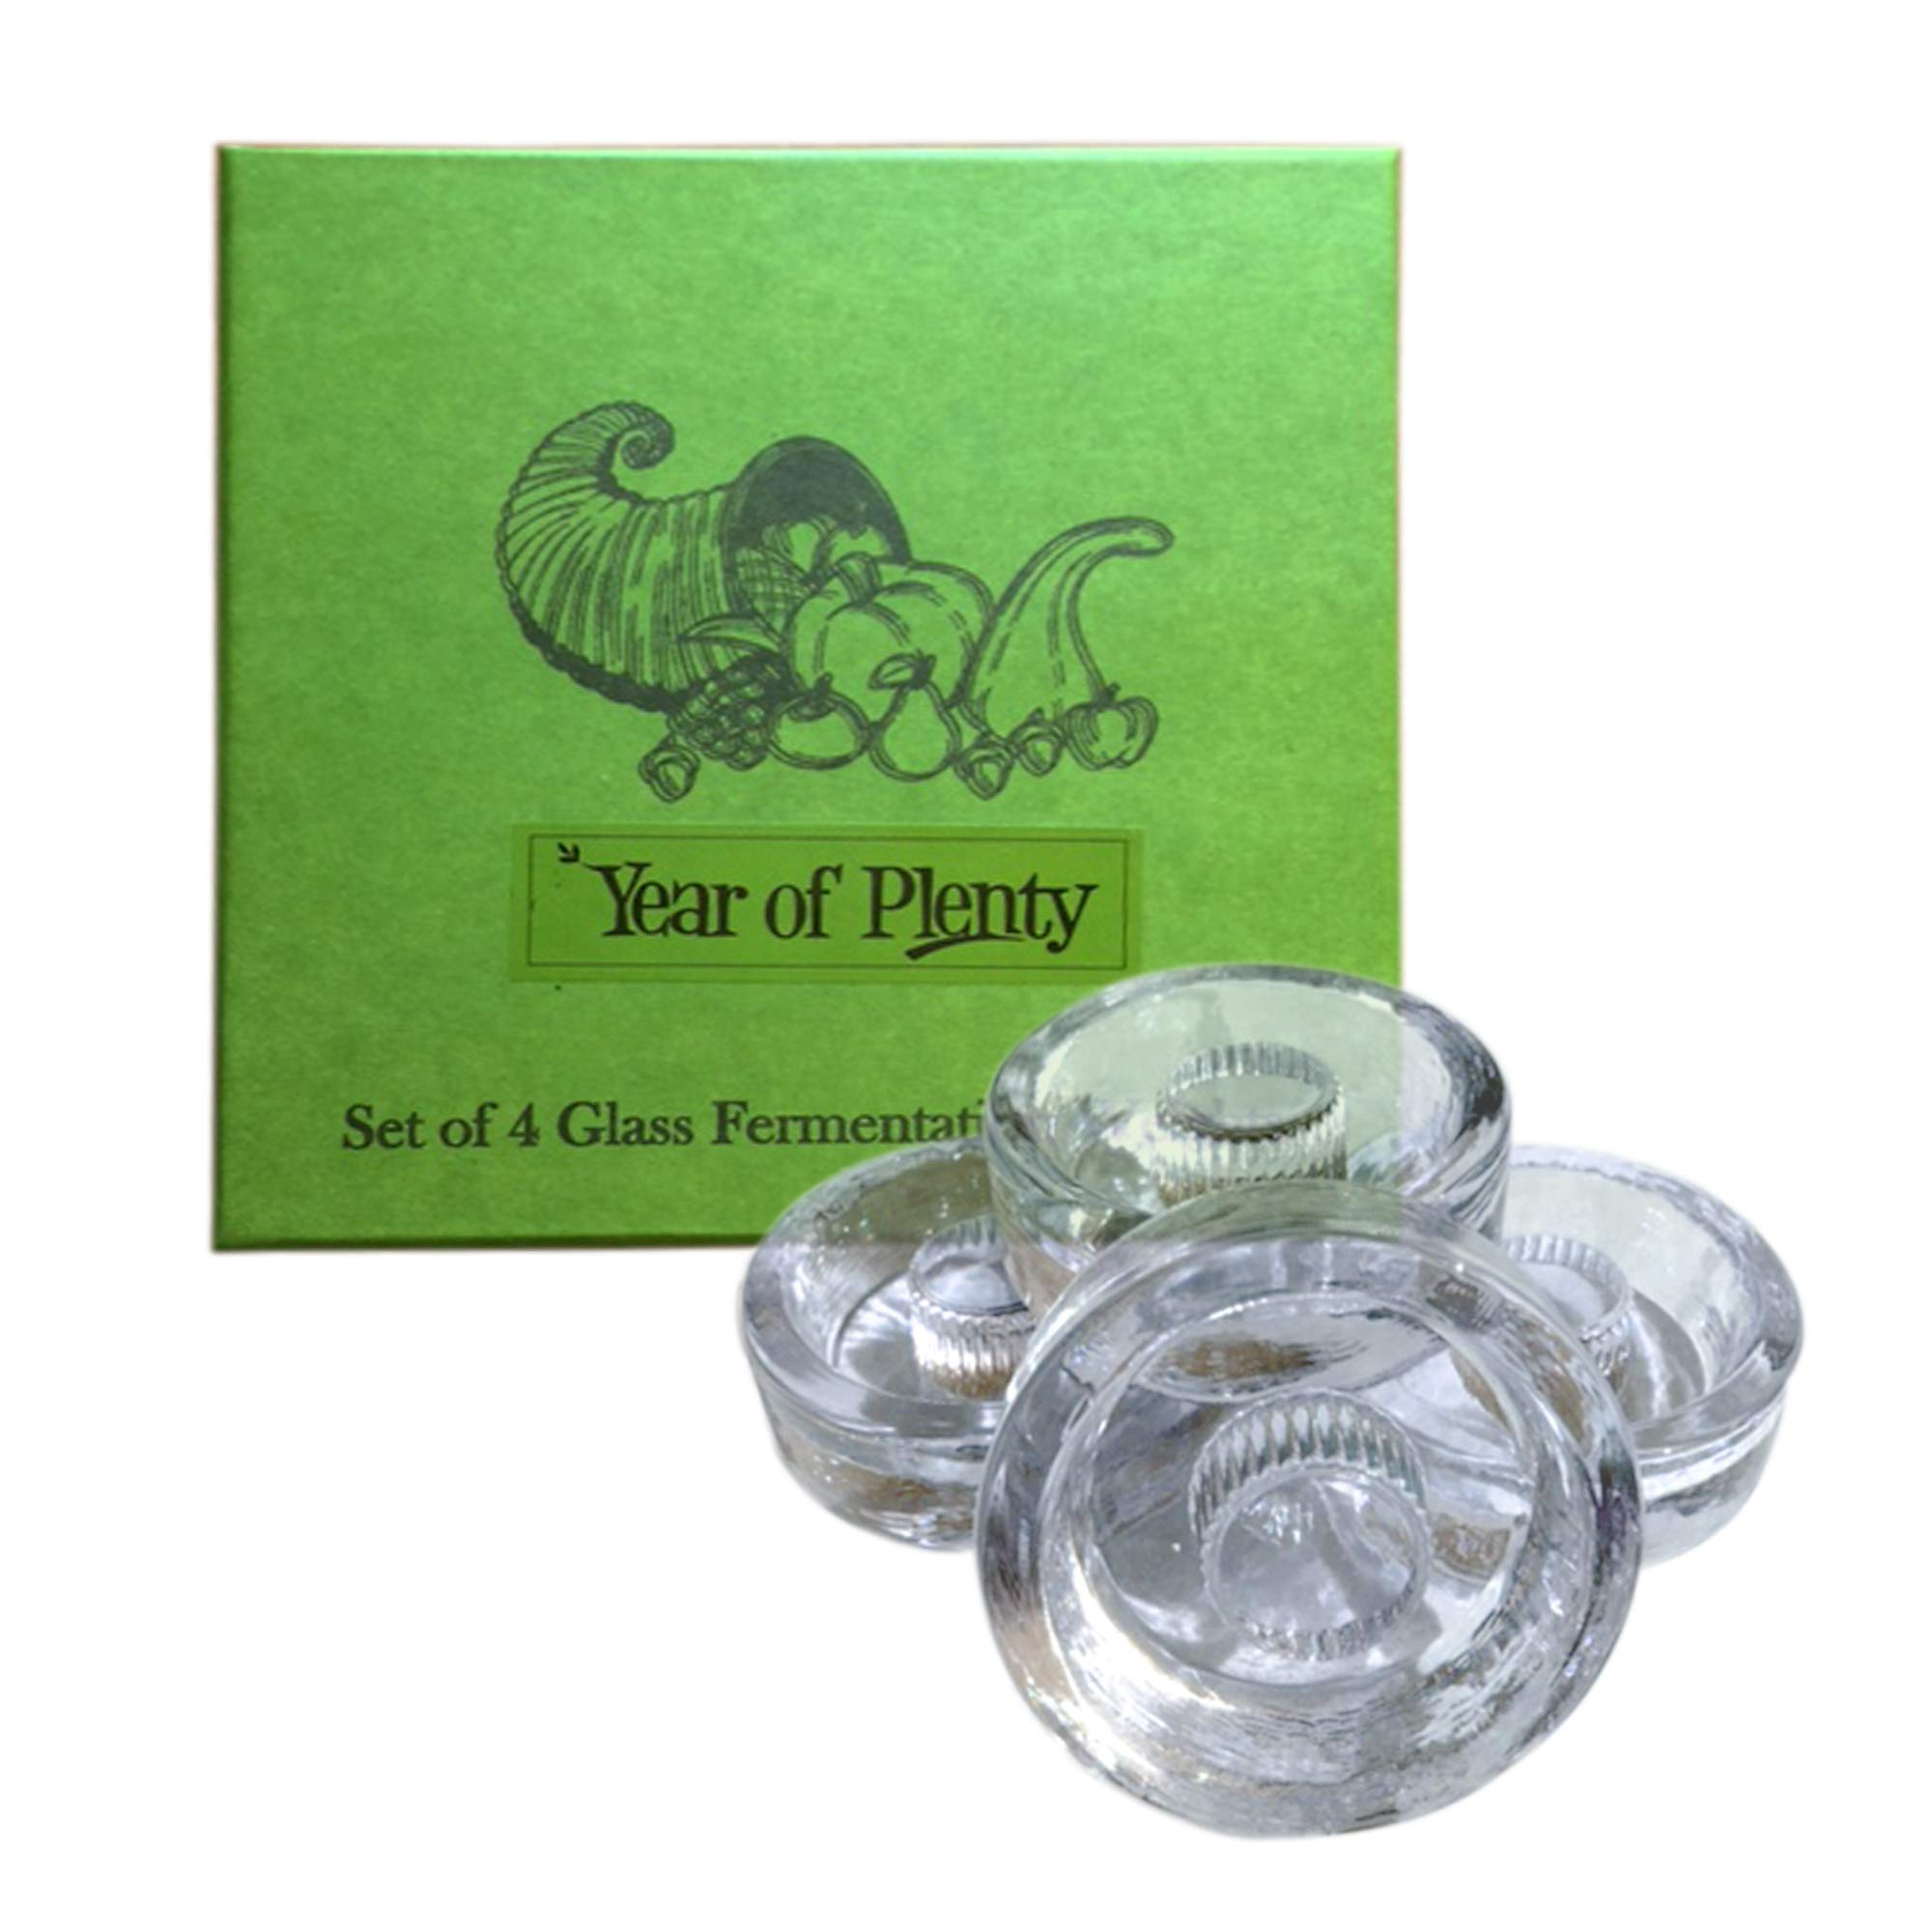 Year of Plenty Fermentation Weights - NonSlip Grip Handle - for Fermenting Sauerkraut, Pickles, Kimchi in Wide Mouth Mason Jars - Lead/Cadmium Free - (Set of 4)